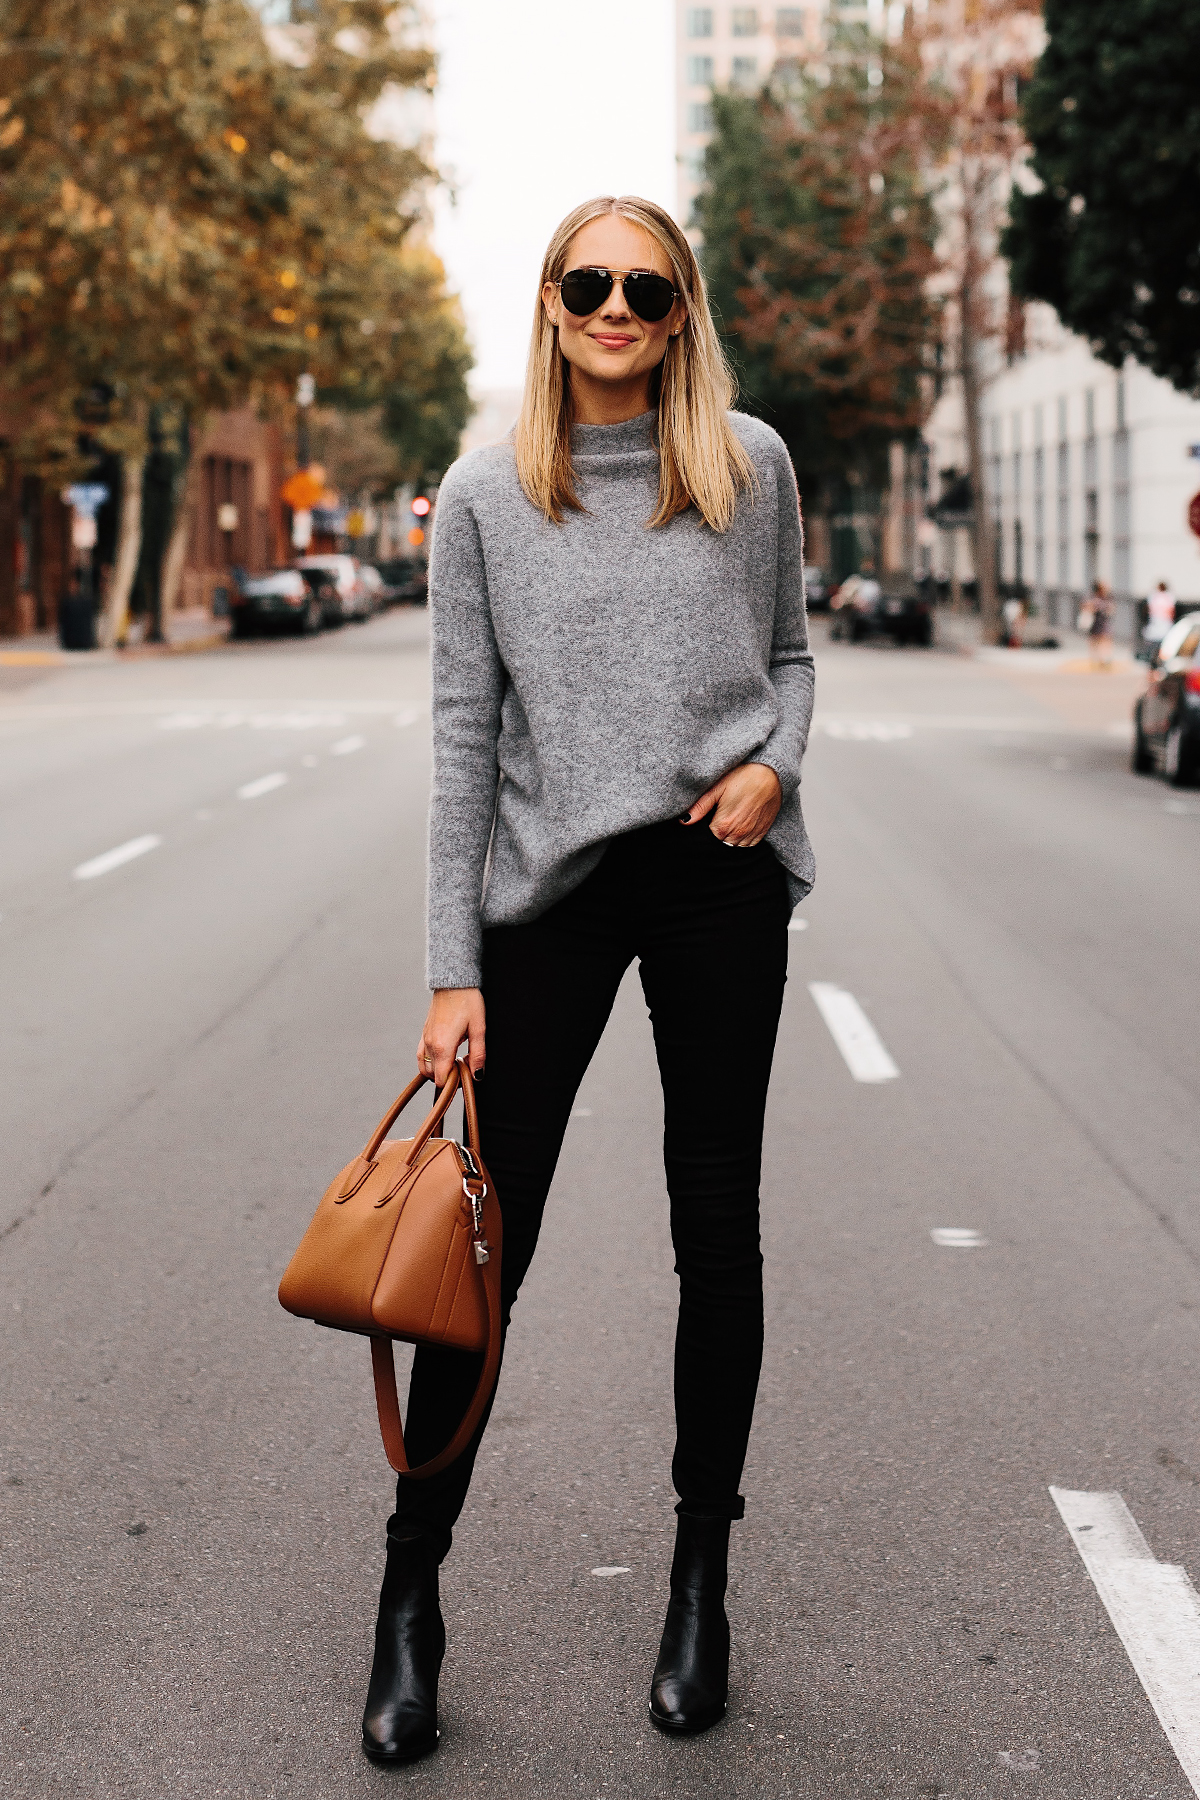 Fashion Jackson Bloomingdales Grey Cashmere Sweater Black Skinny Jeans Black Booties Outfit Tan Satchel Handbag Aviator Sunglasses